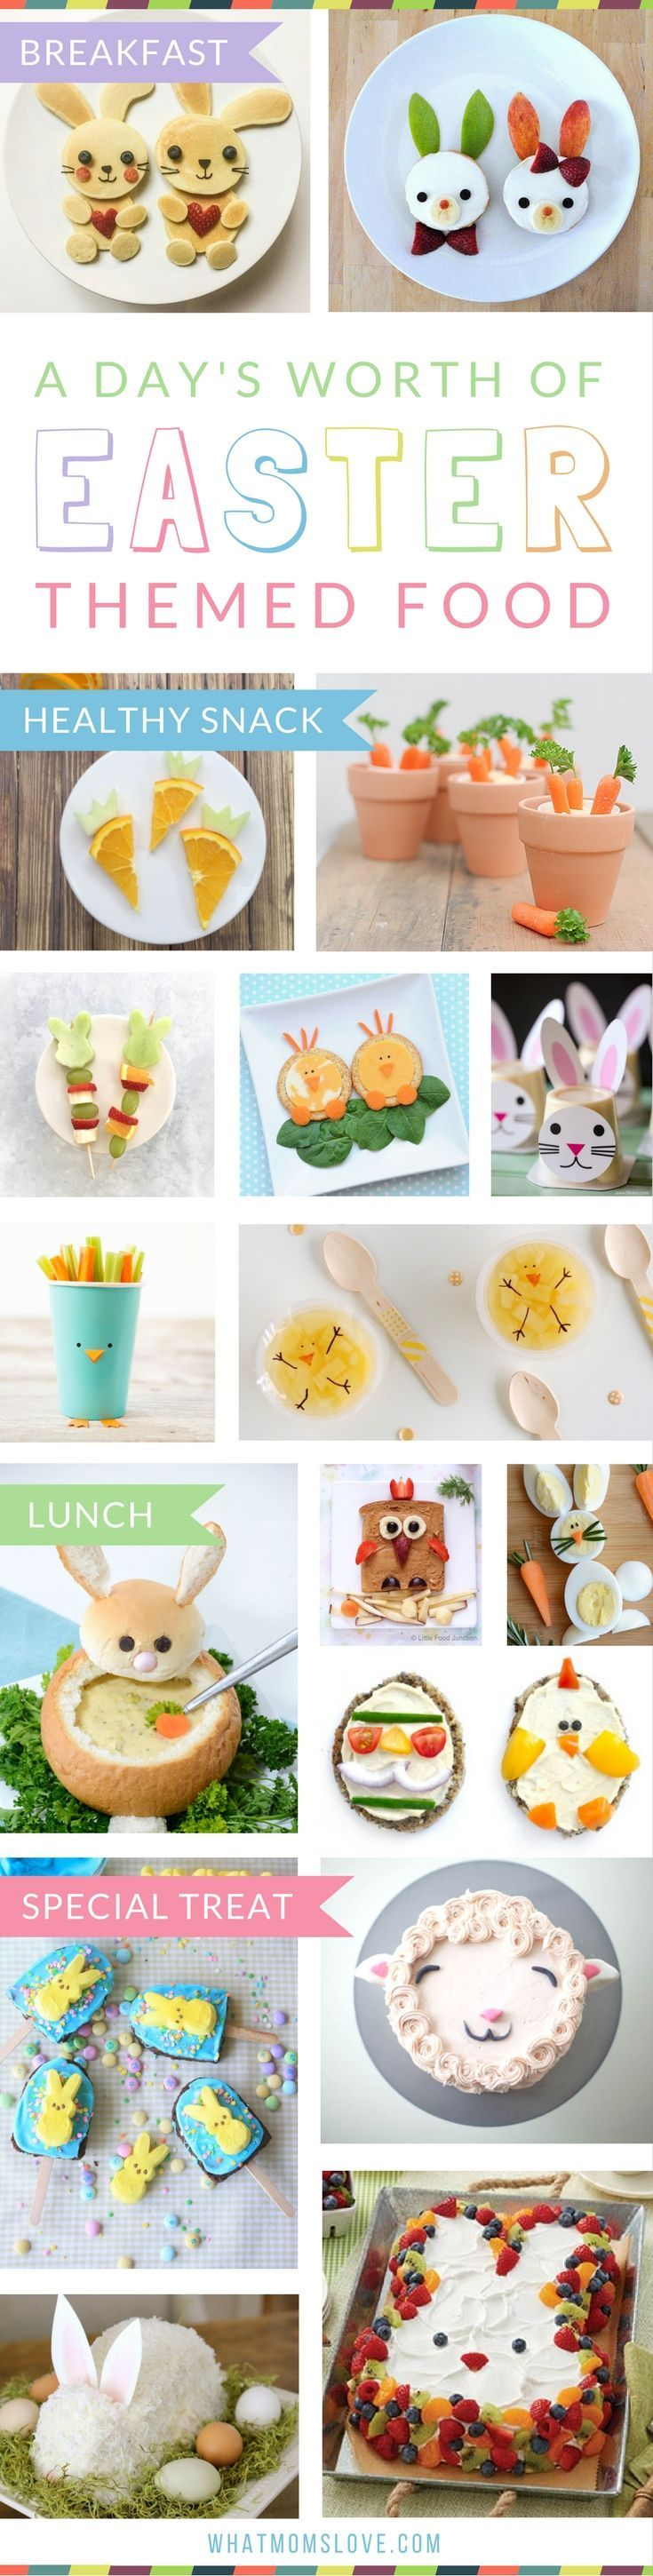 Fun Easter Food Ideas for Kids | Creative Easter themed recipes to make for your children for Breakfast, Brunch, Lunch or a Healthy Snack. Plus, sweet treats and desserts that are perfect for your child's school class party or just for fun - super cute yet easy including cakes, bark, brownies, peeps, bunnies, lambs, mini eggs, rice krispies and more! Head to http://whatmomslove.com for all the recipes.